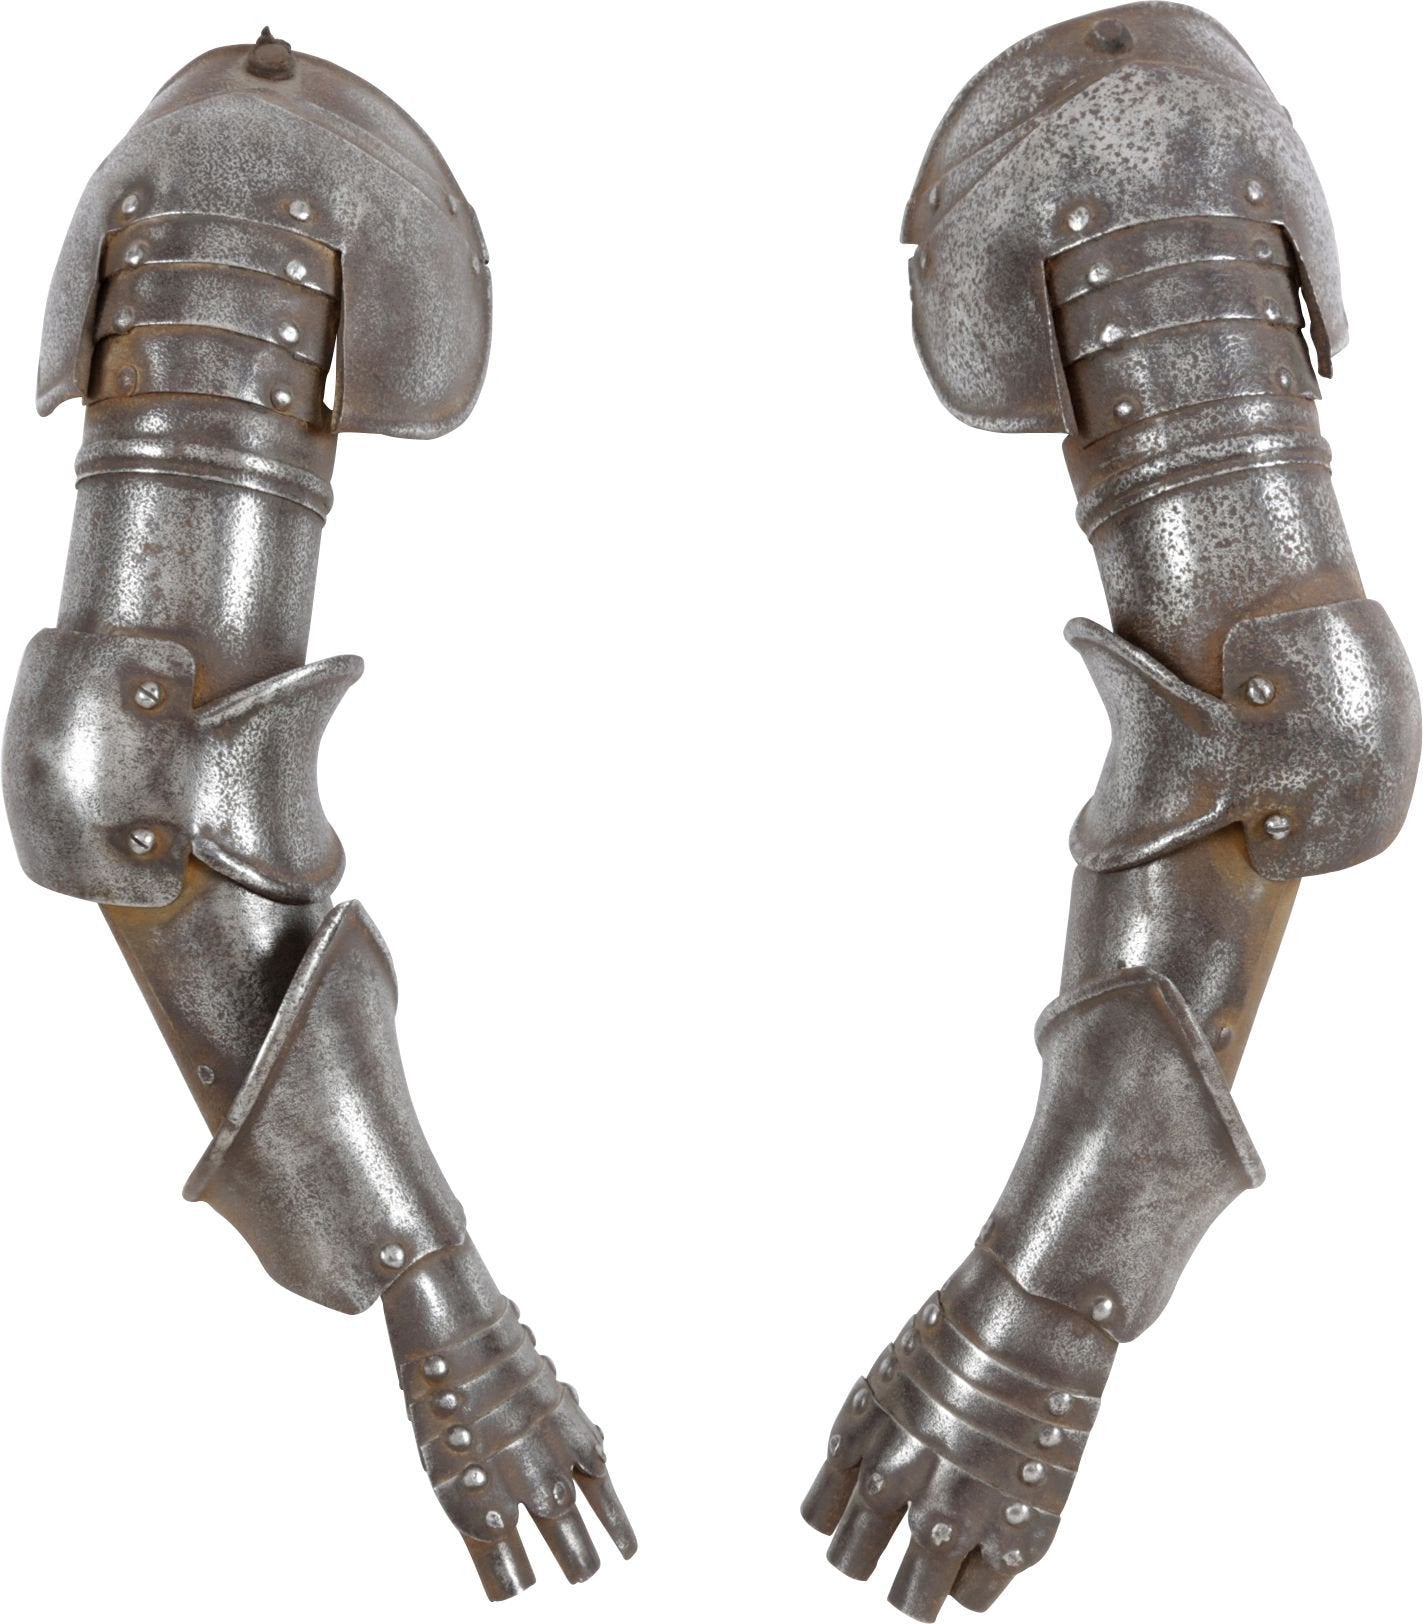 Antique Pair Of Brassards (Full Arms) For A Miniature Armor - Product